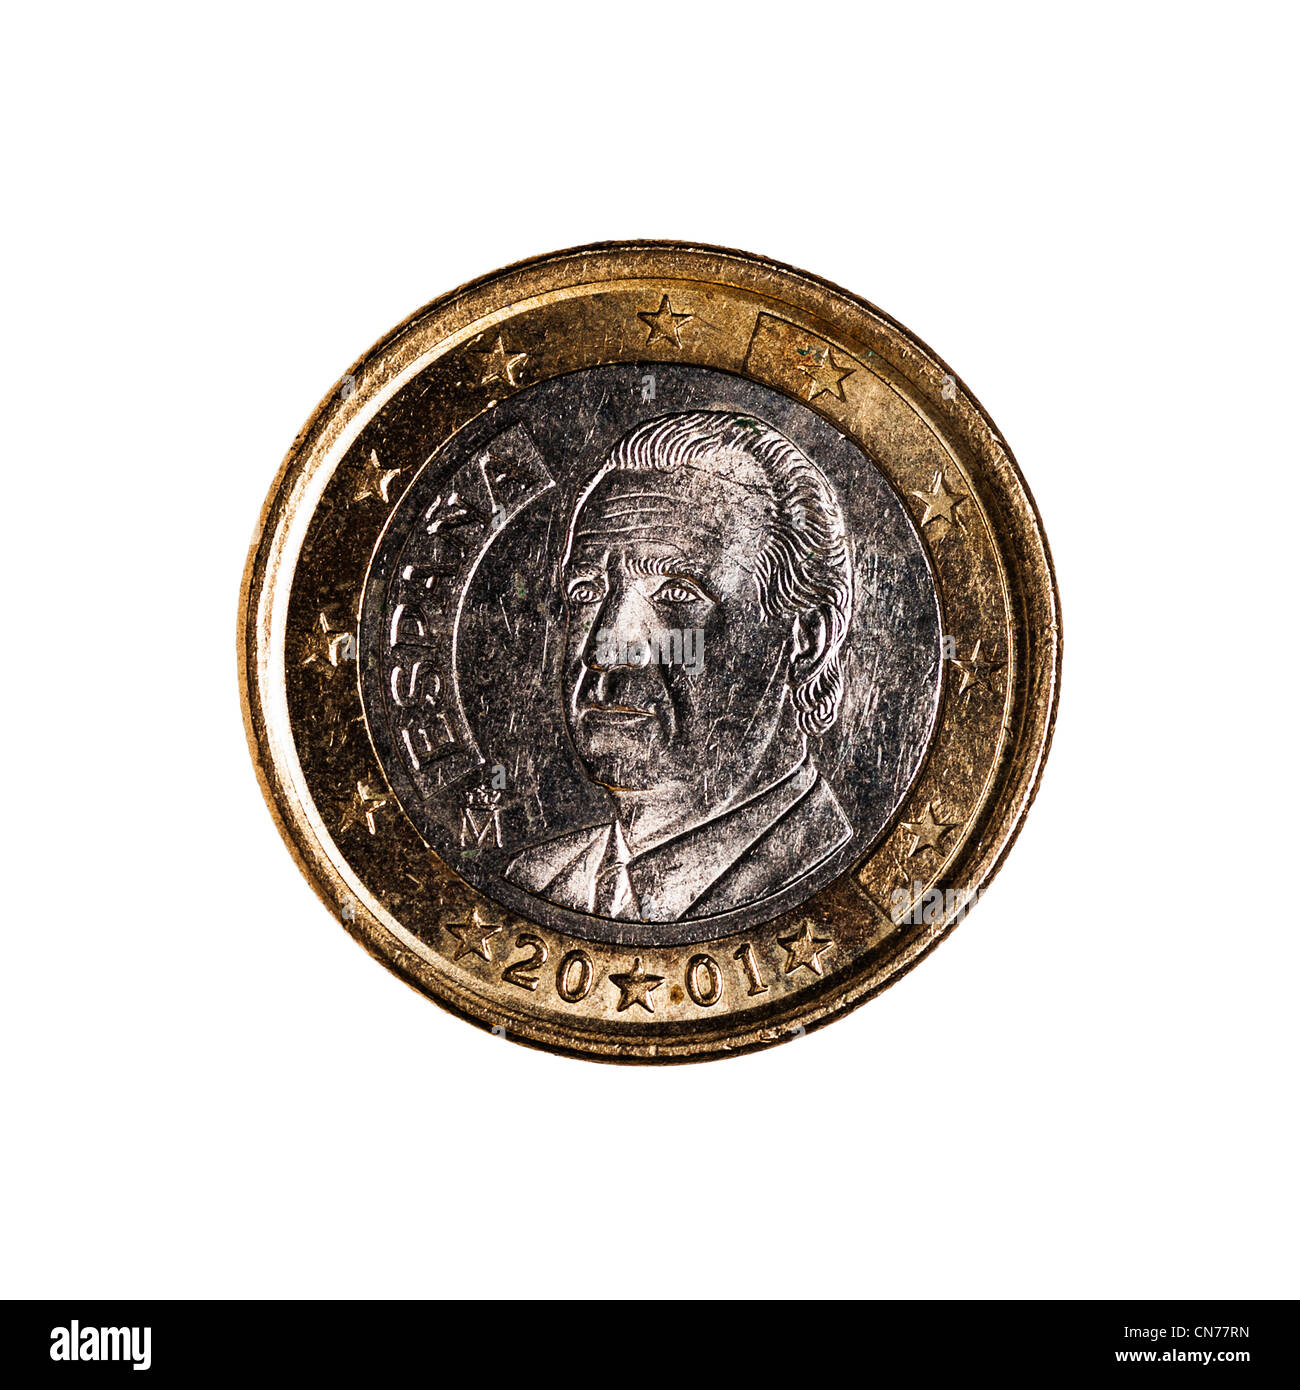 A one euro coin on a white background - Stock Image